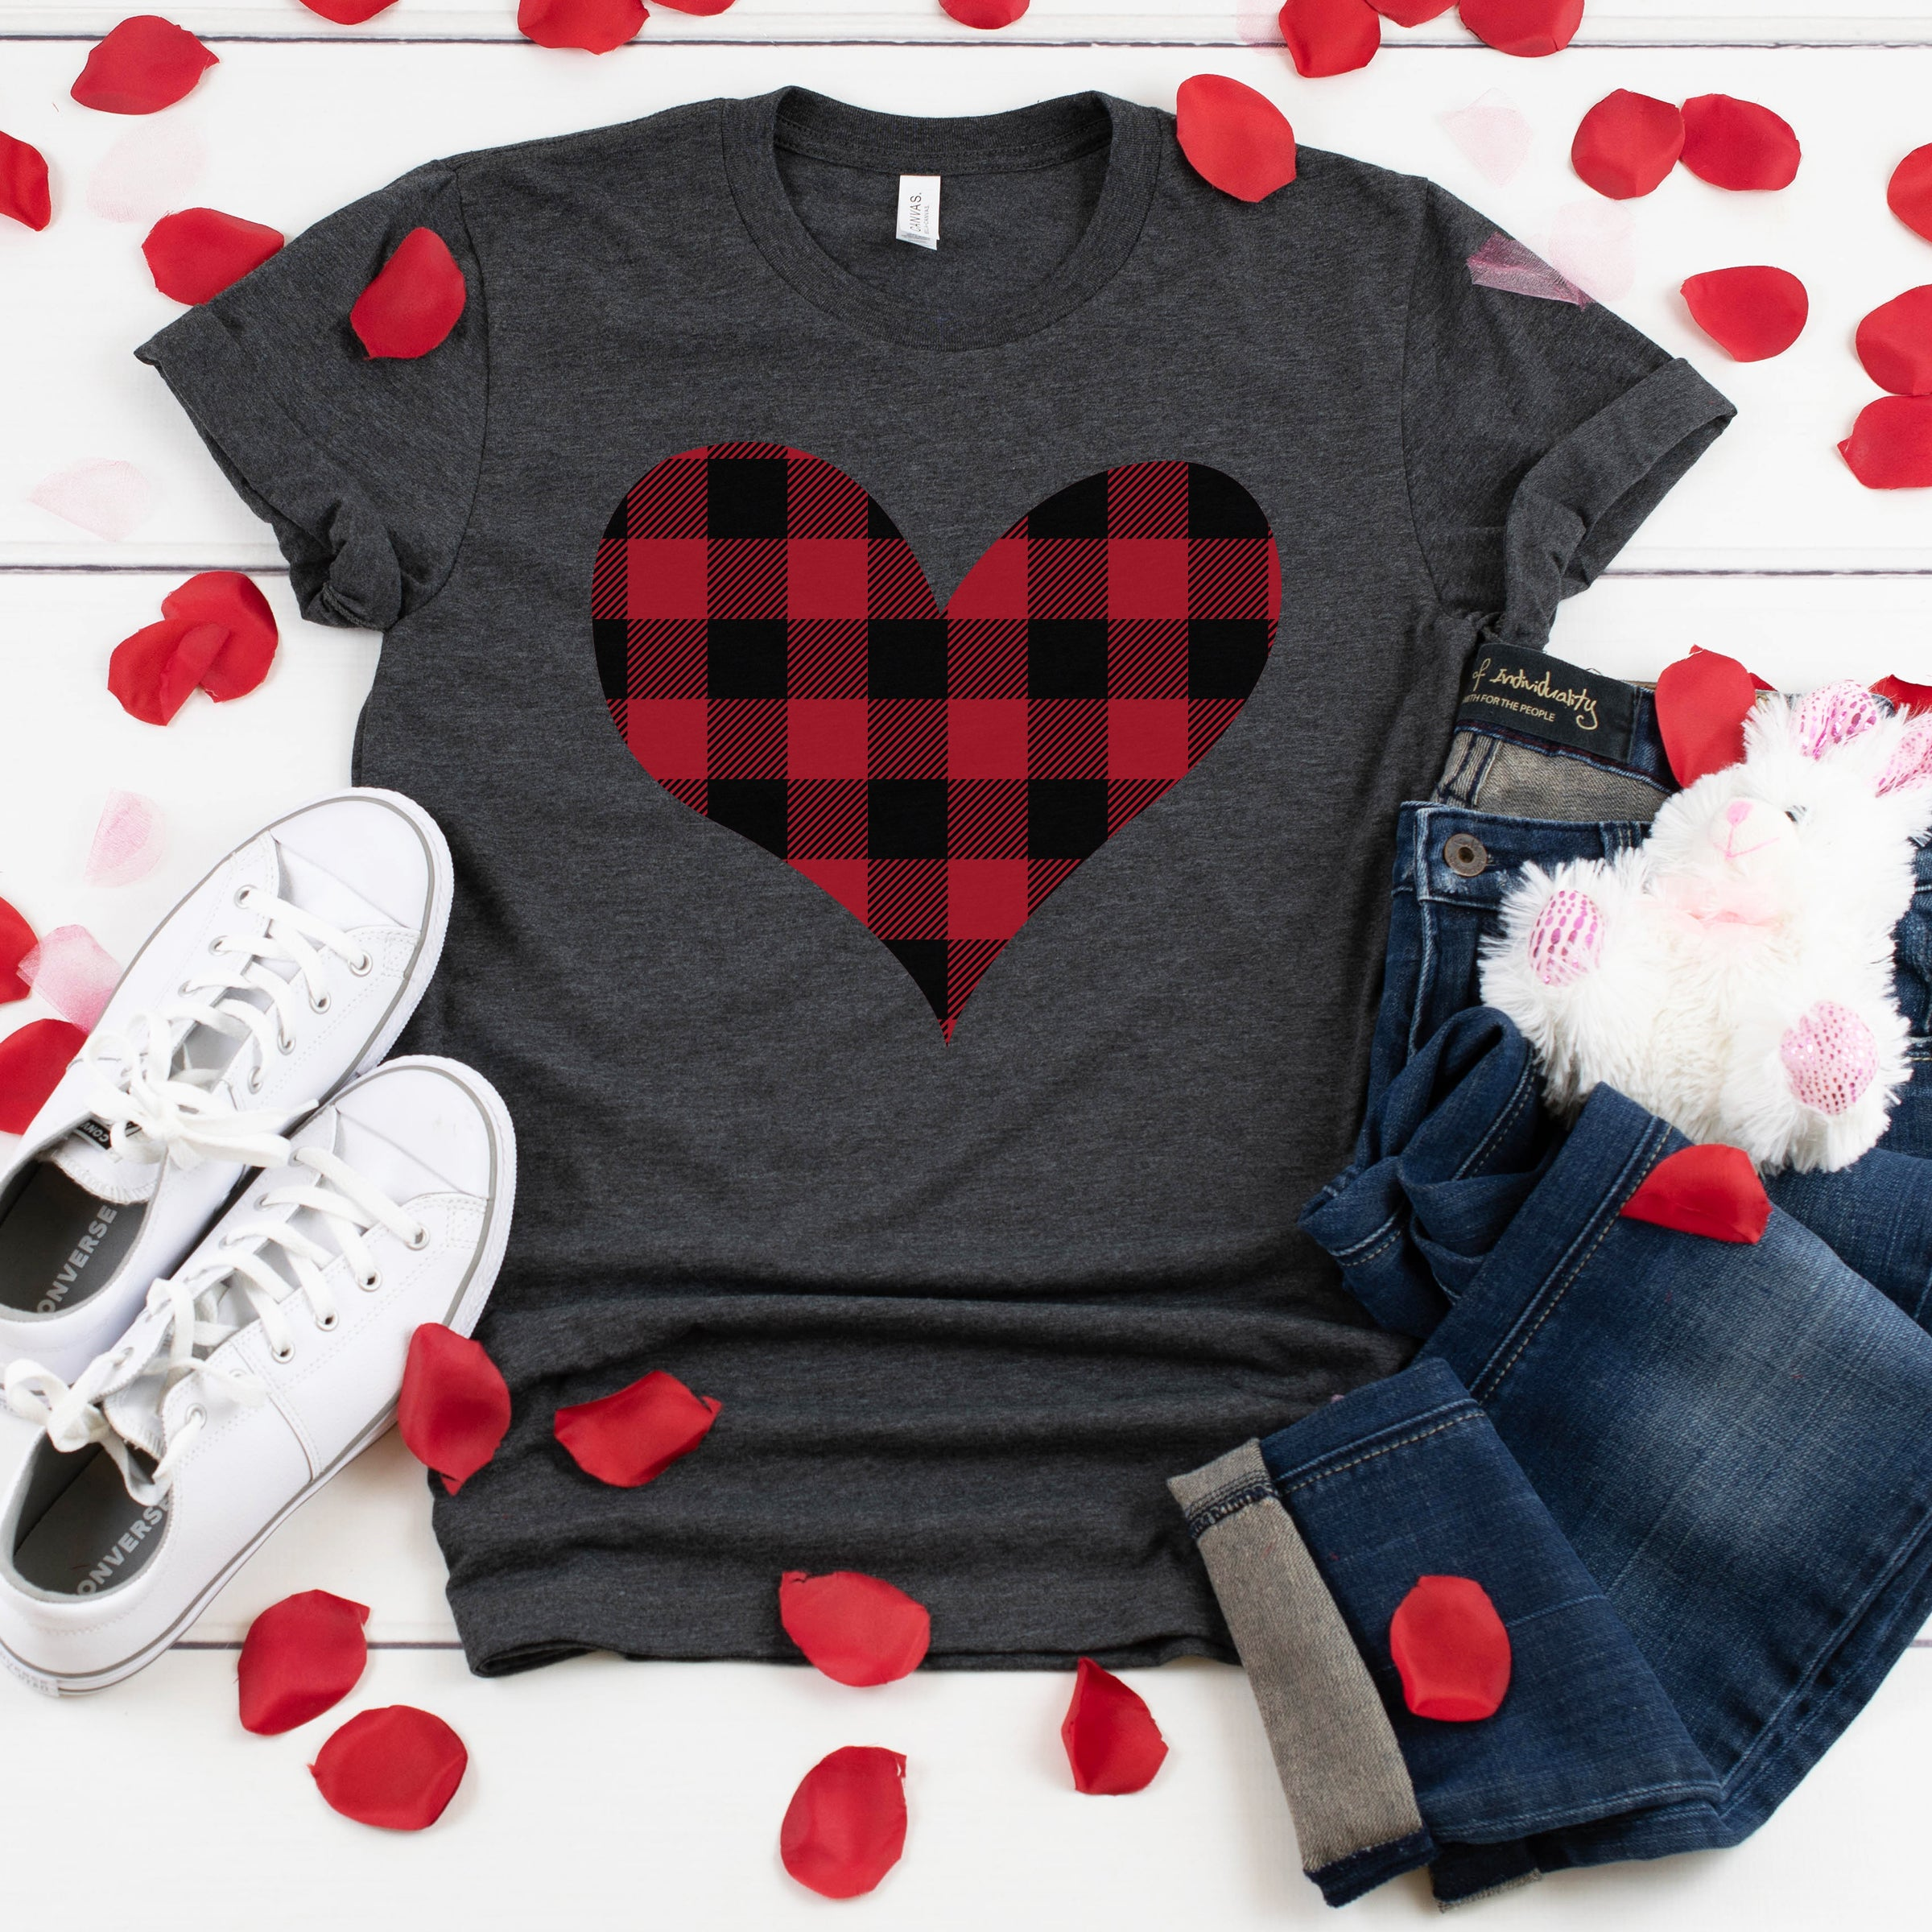 Red Buffalo Plaid Heart Shirt Cute Valentine's Day Shirt for Women